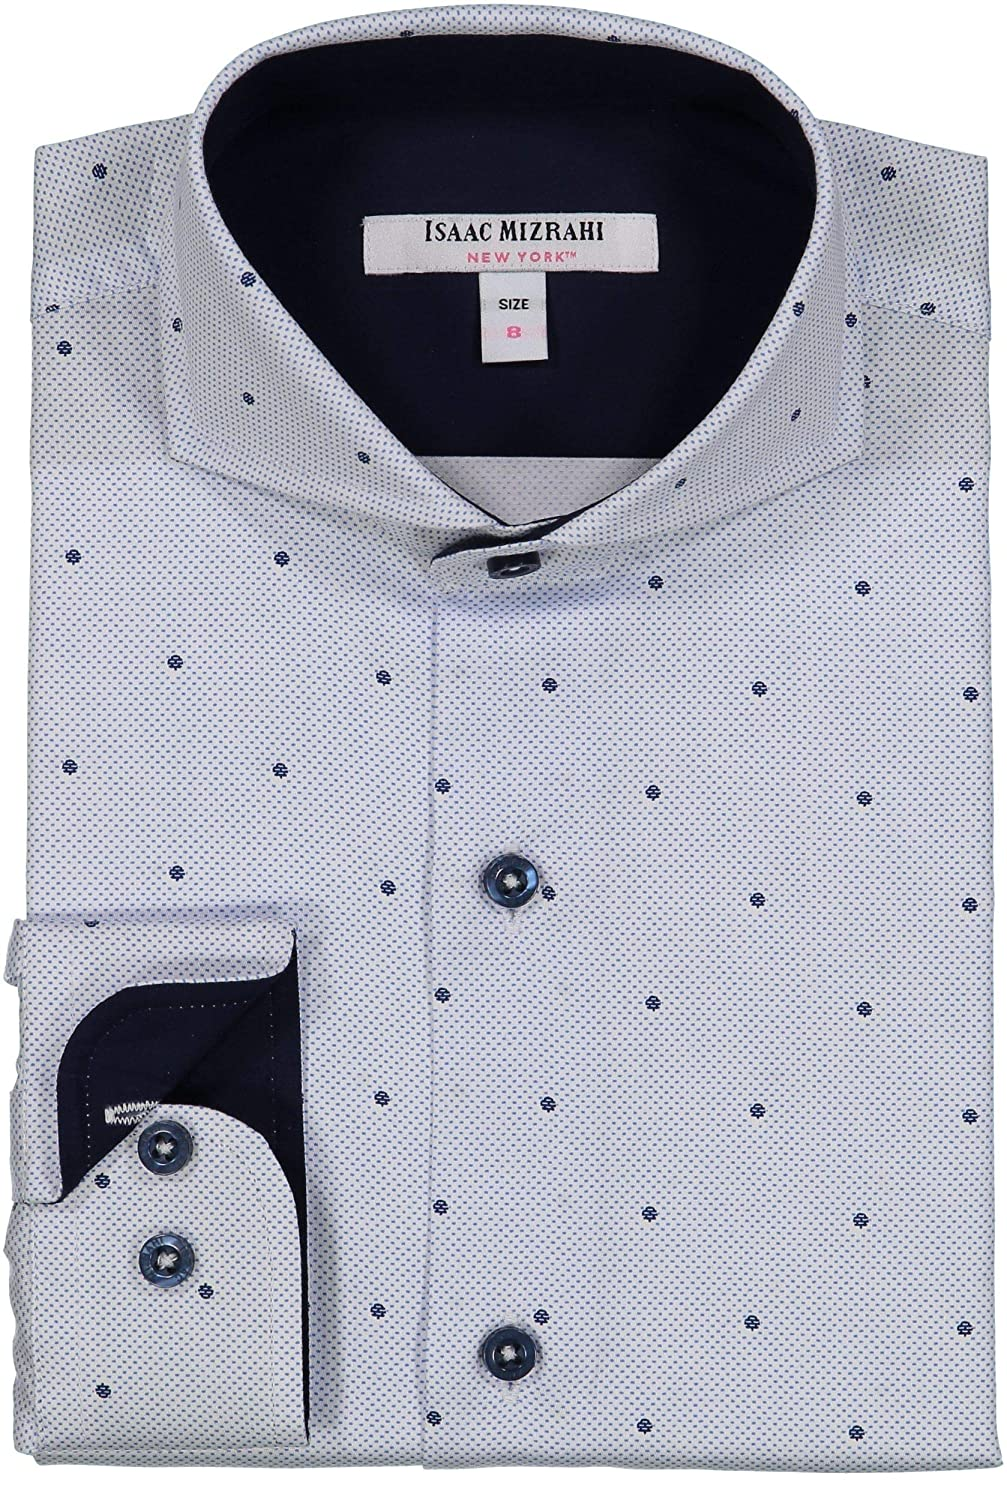 Boys 100% Cotton Designer Fashion Dress Shirt - Many Colors and Pattern Available